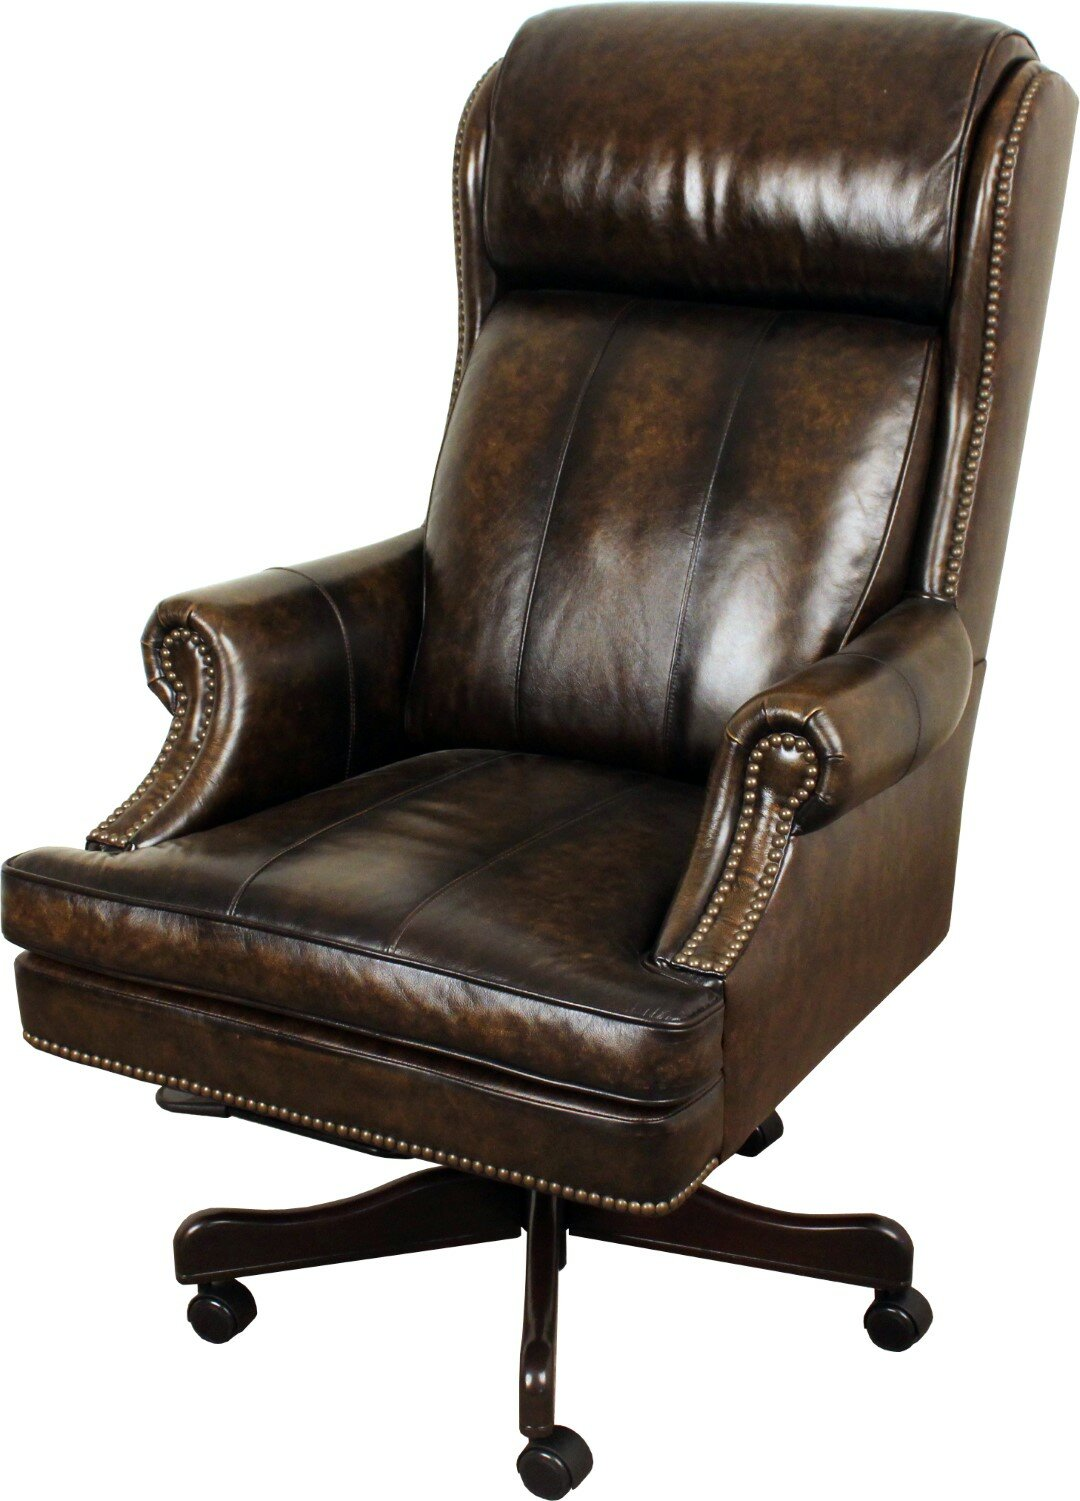 Delicieux Darby Home Co Corey Leather Executive Chair U0026 Reviews | Wayfair